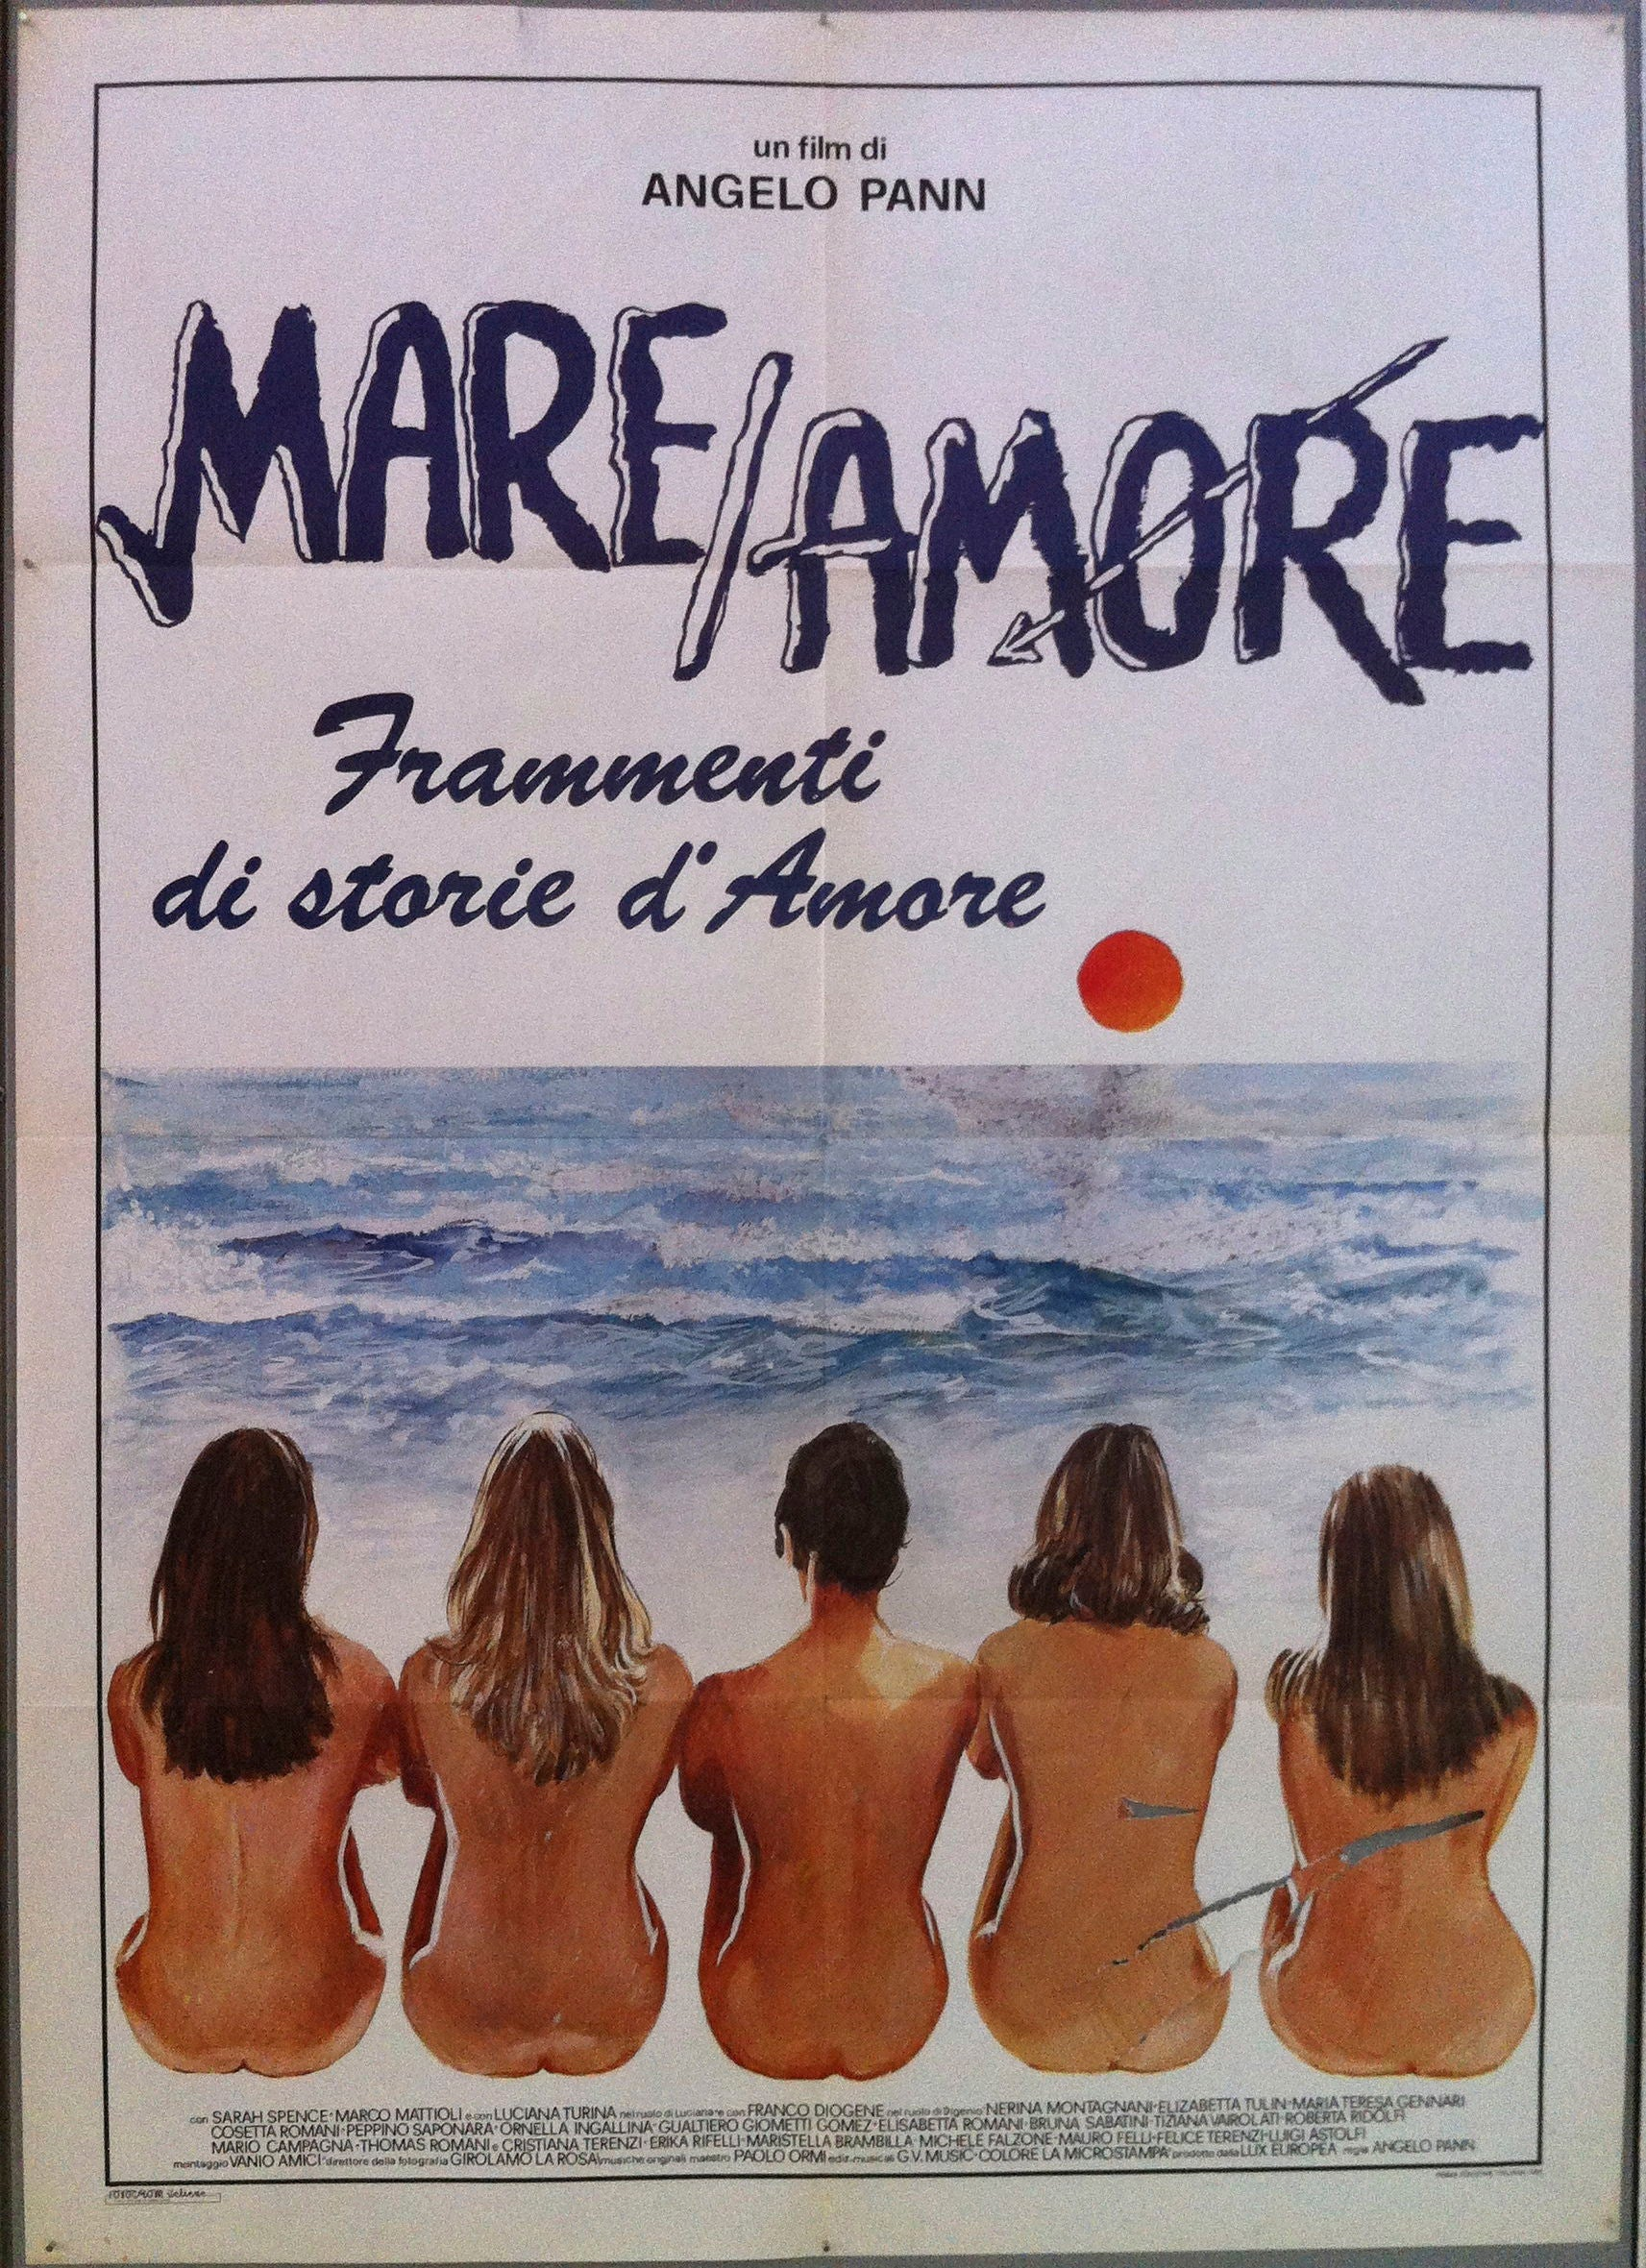 Mare/Amore Frammenti di Storie d' Amore